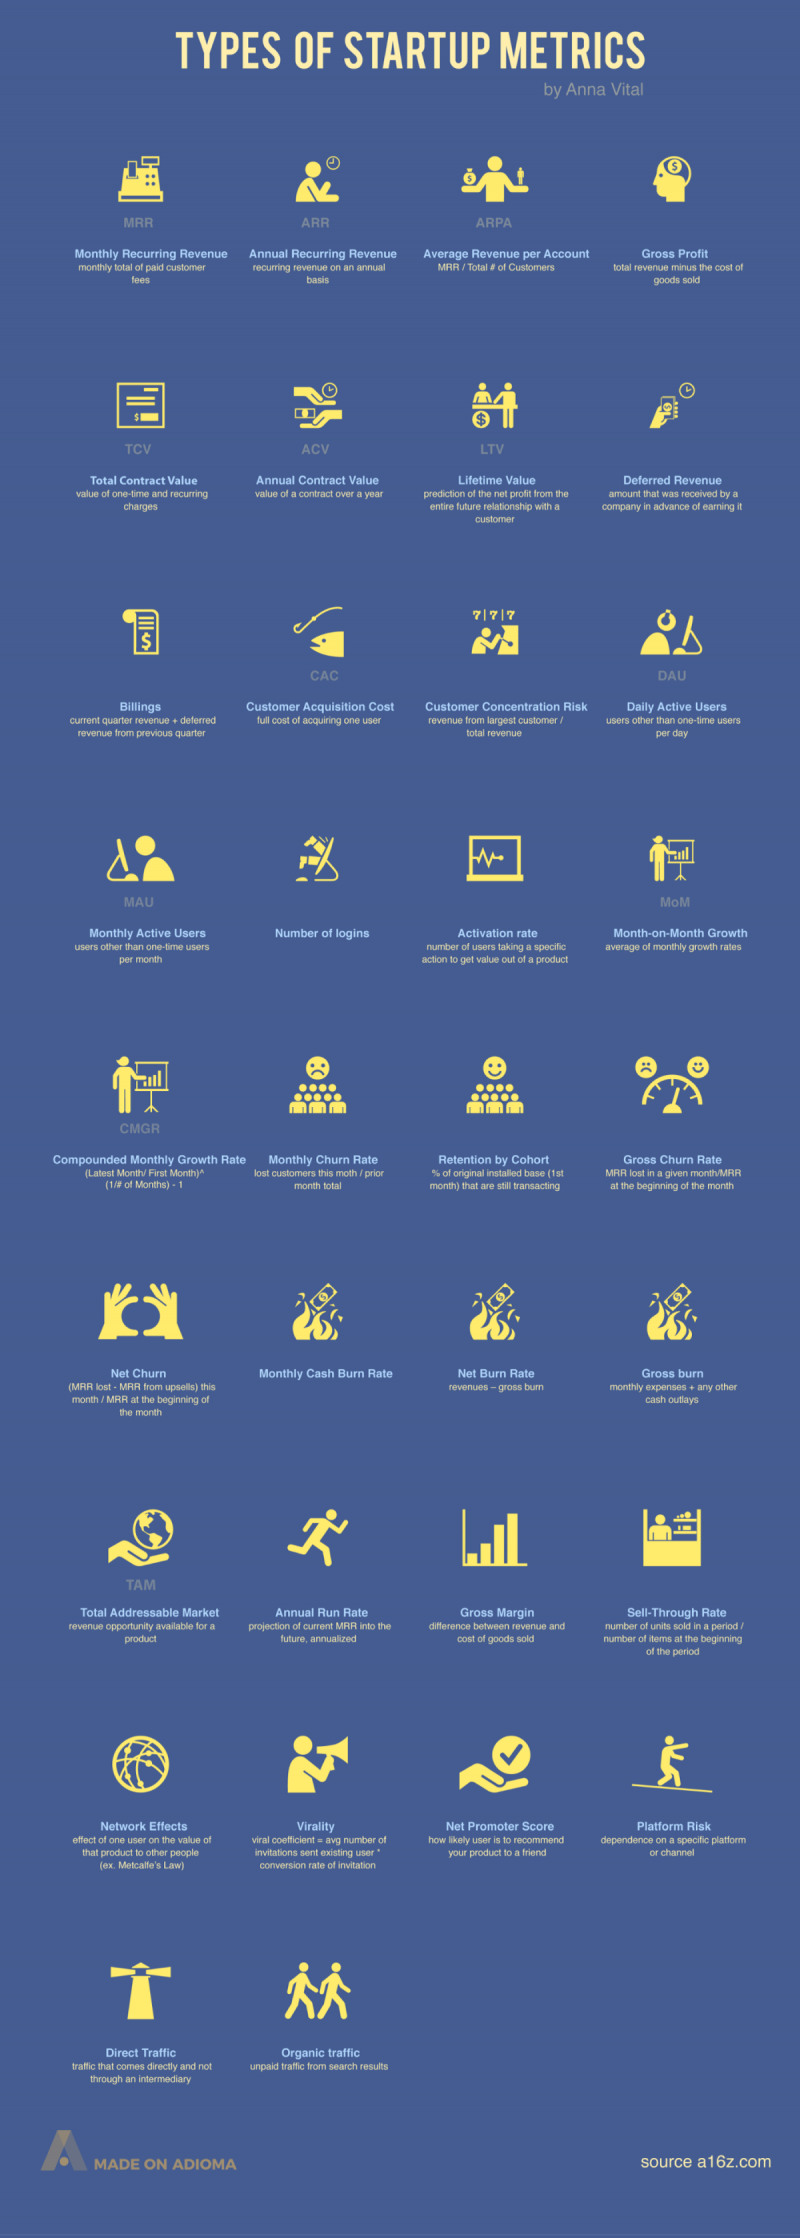 The Most Important #Startup Metrics for Tech #Entrepreneurs #Infographic